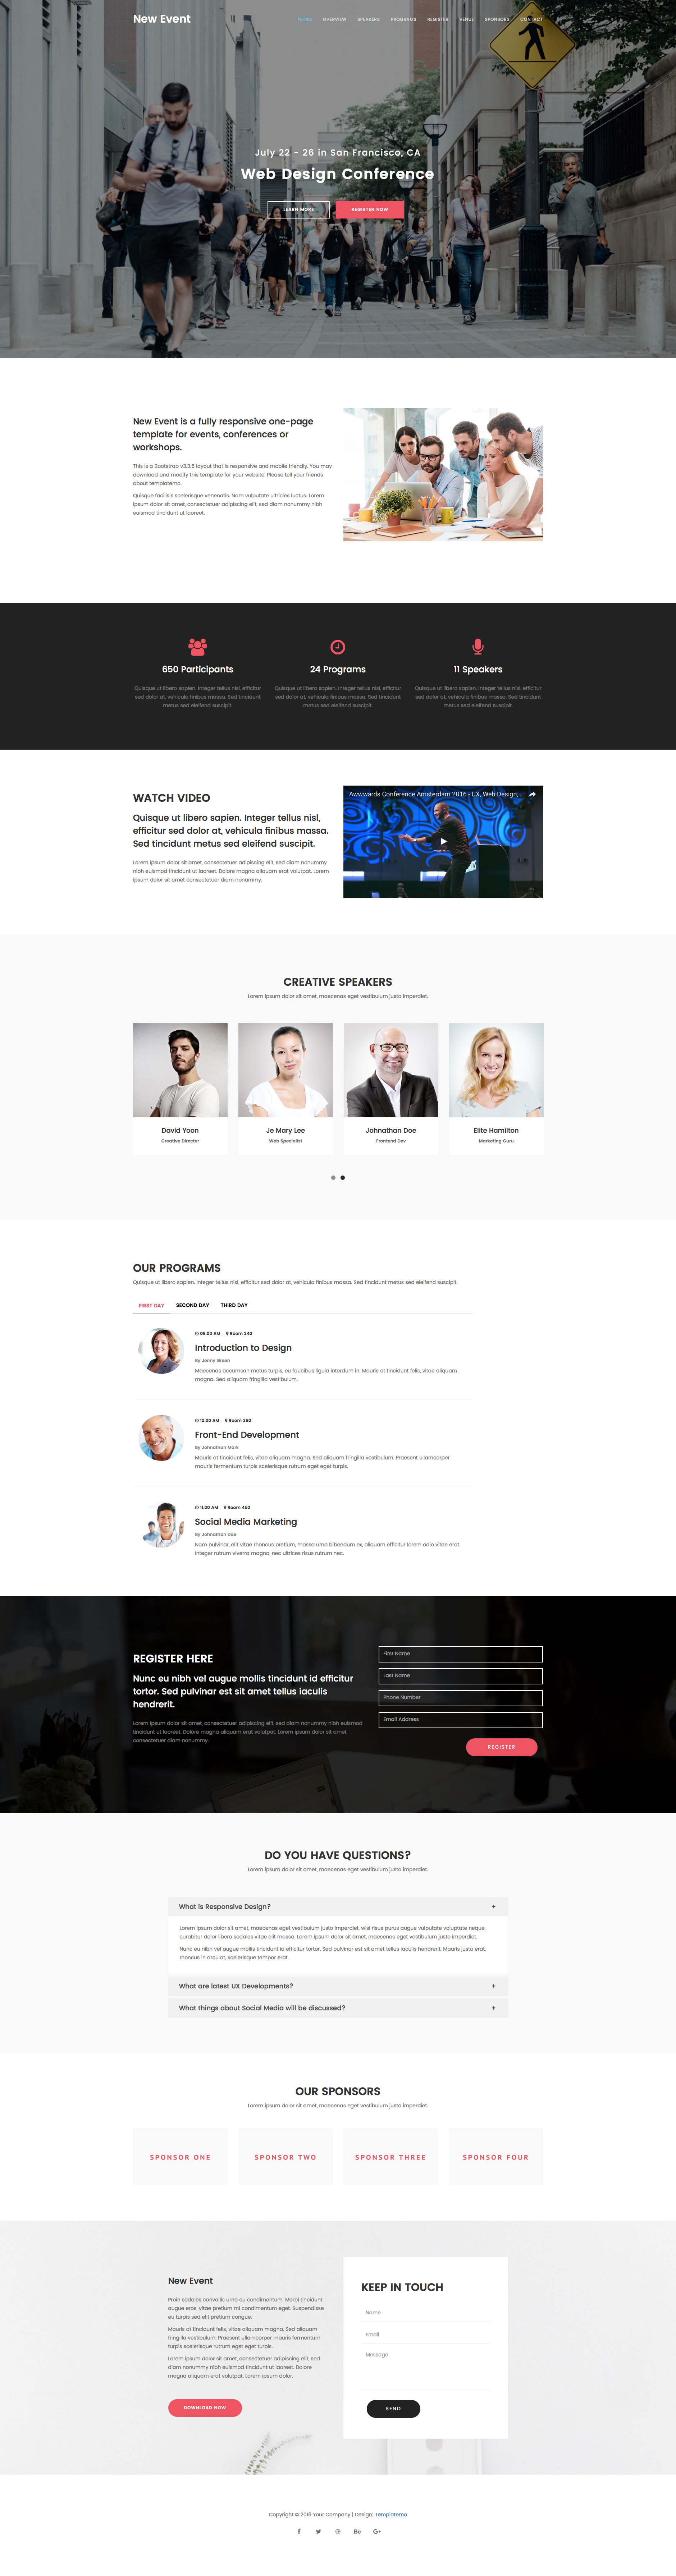 New Event is a free responsive HTML5 event template using Bootstrap 3 framework. New Event has a features like parallax, css animations, sticky header and many more. It is the perfect template for event related websites. Event template is built with the latest HTML5 & CSS3 technology.